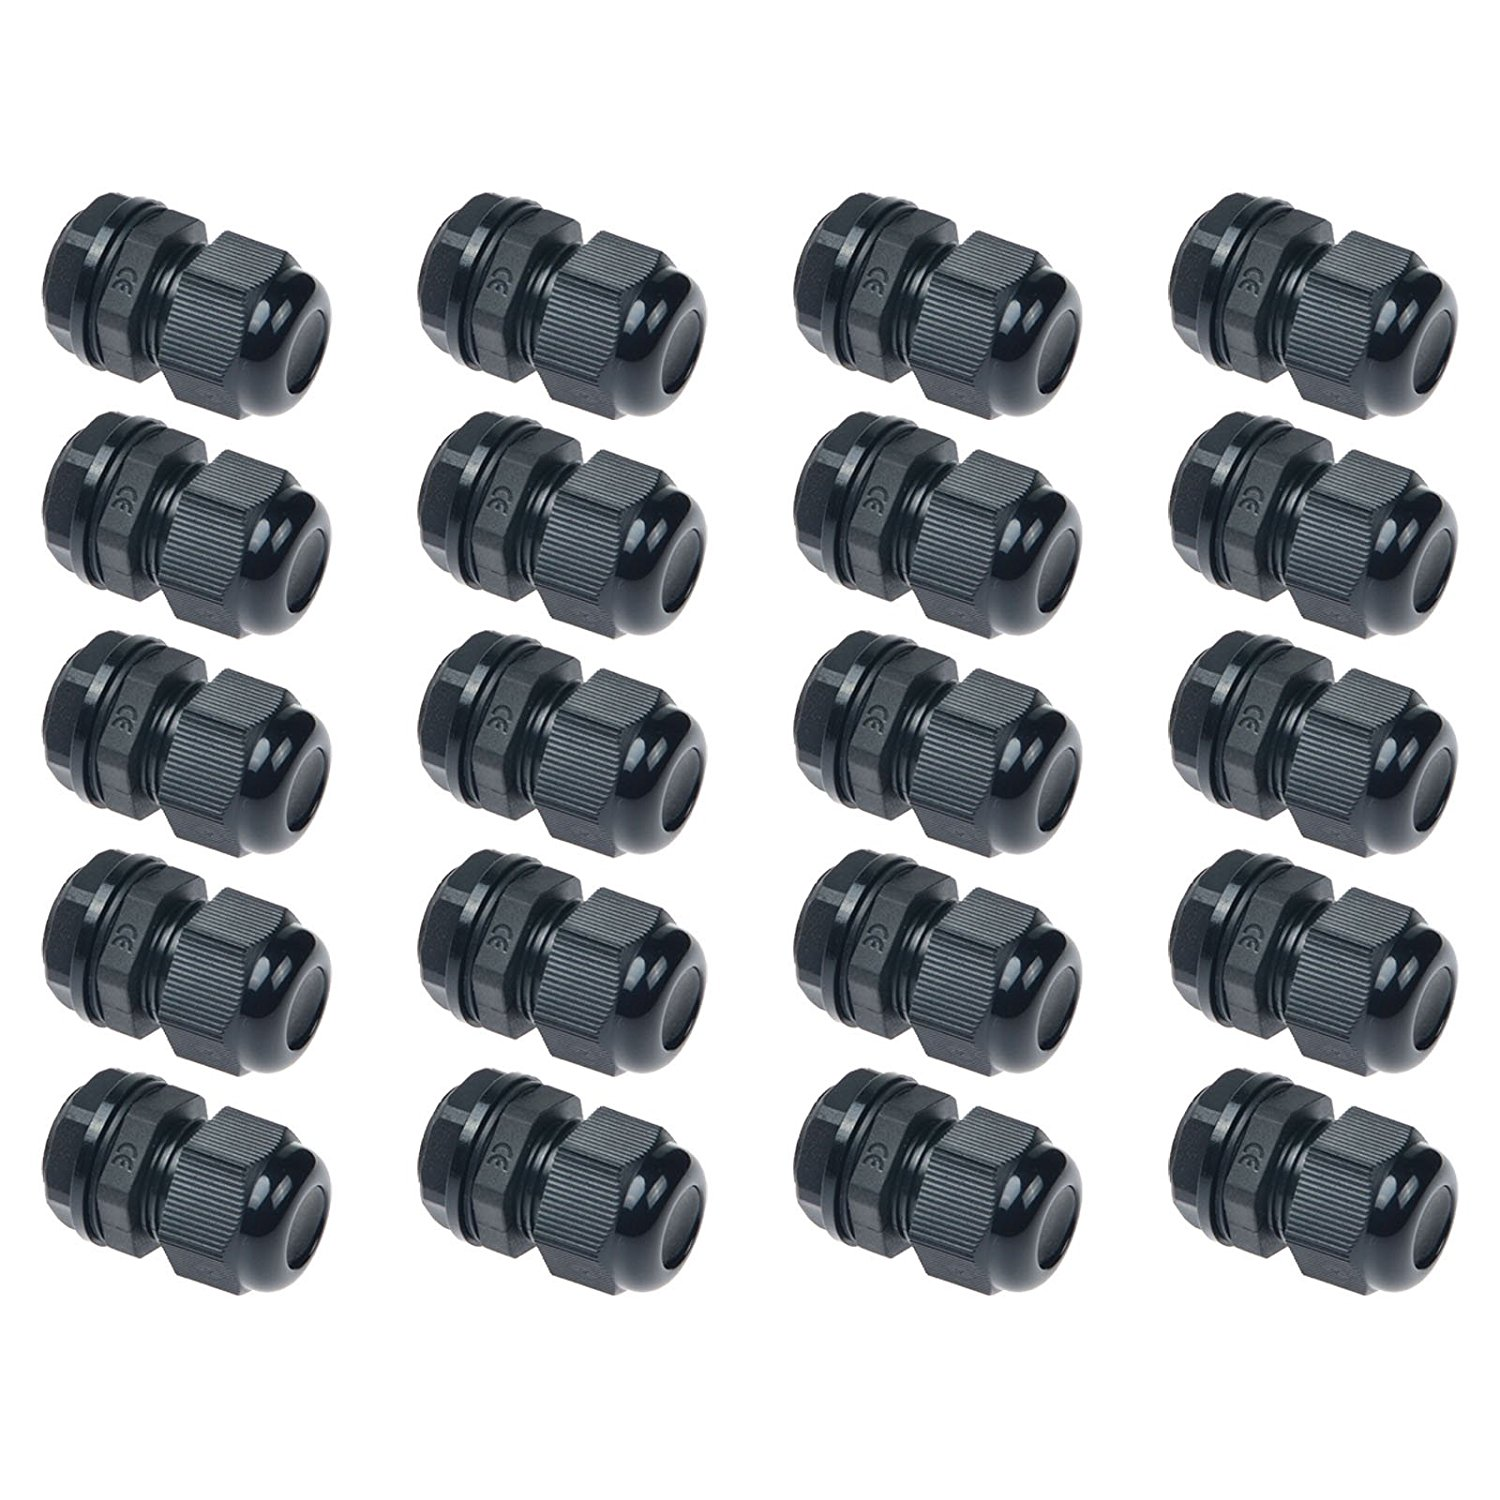 Saim Cable Glands PG7 Plastic Waterproof Adjustable Cable Glands Joints for Cable Wire 3-6.5mm Dia Pack of 20